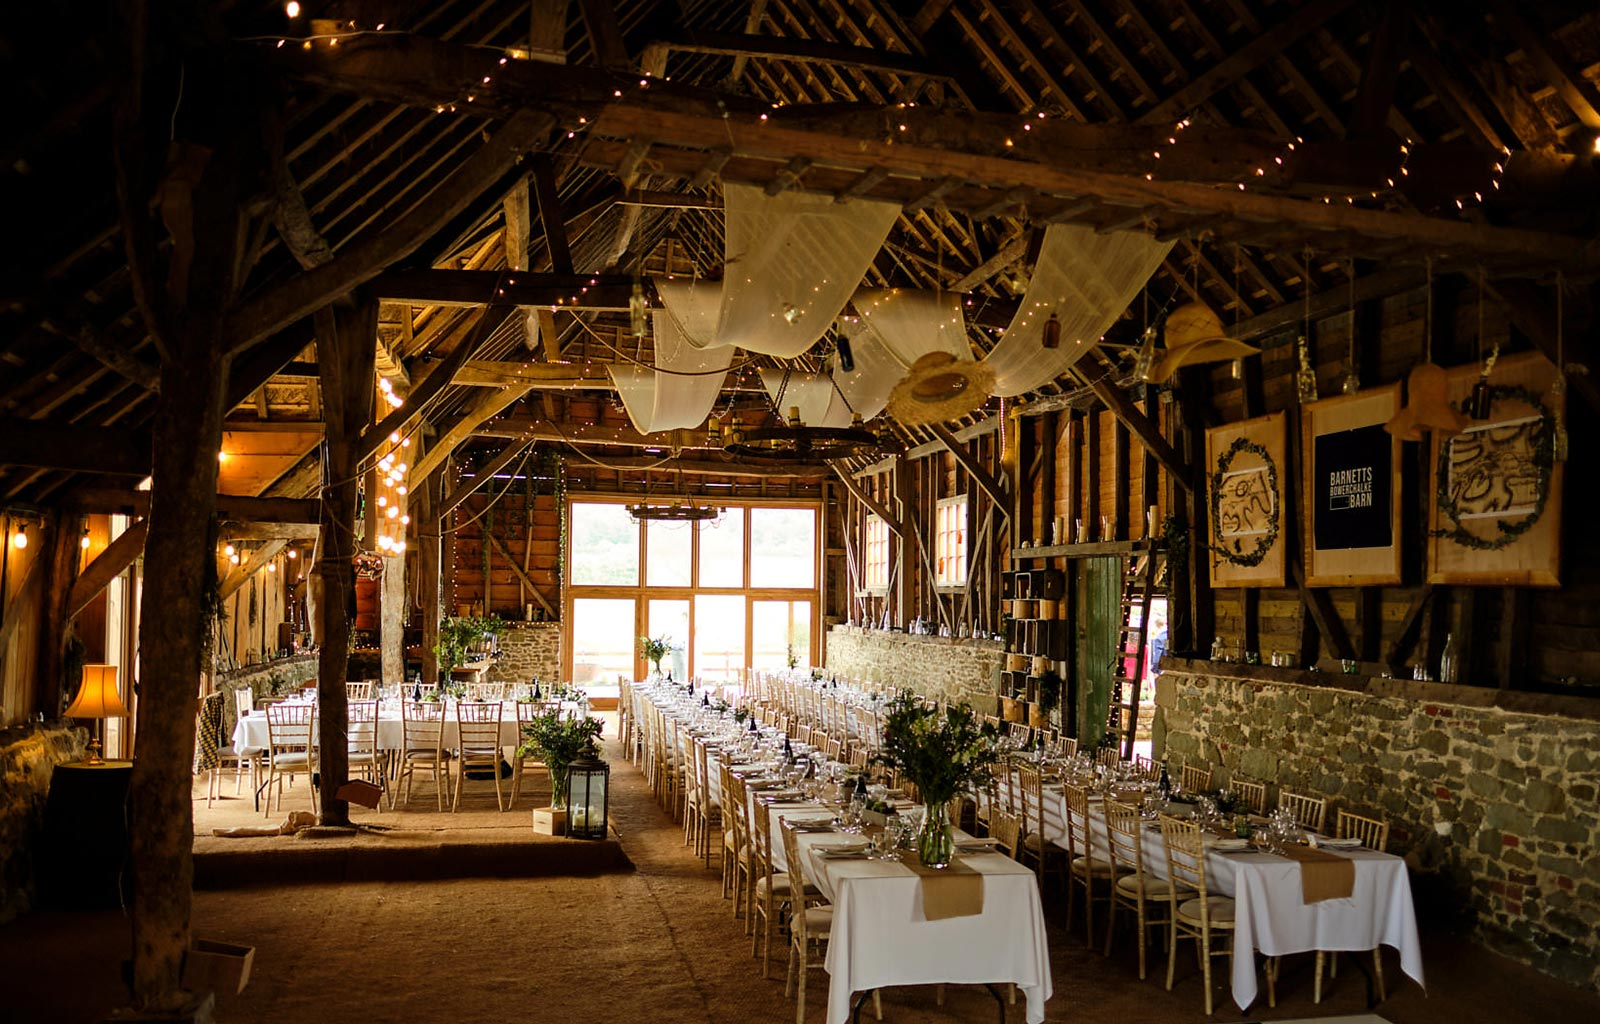 Wedding Private Hire Barn In Wiltshire Bowerchalke Barn